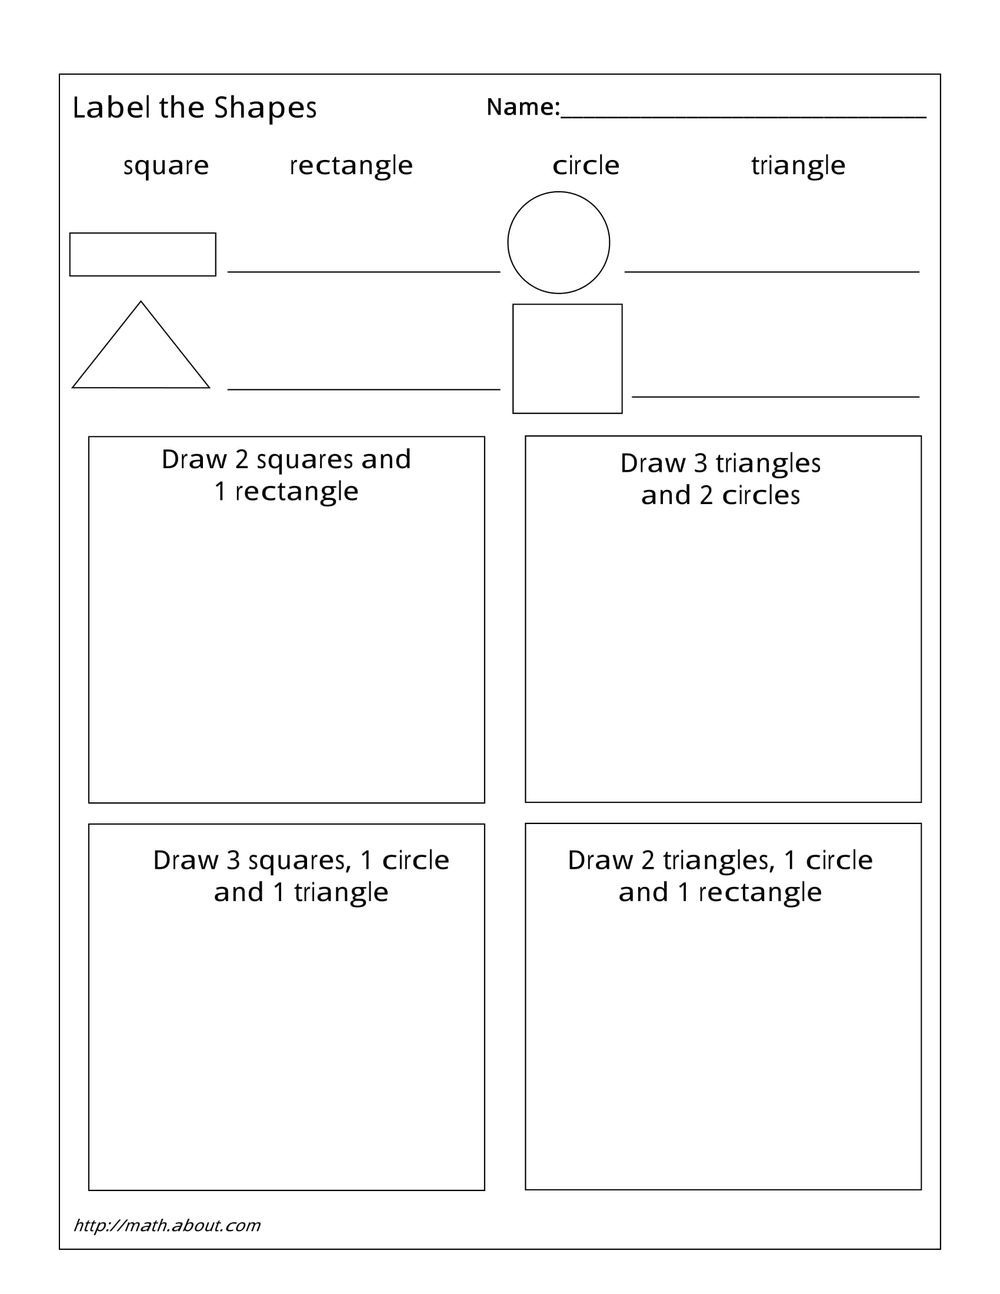 1st Grade Geometry Worksheets For Students Geometry Worksheets Shapes Worksheet Kindergarten Printable Math Worksheets